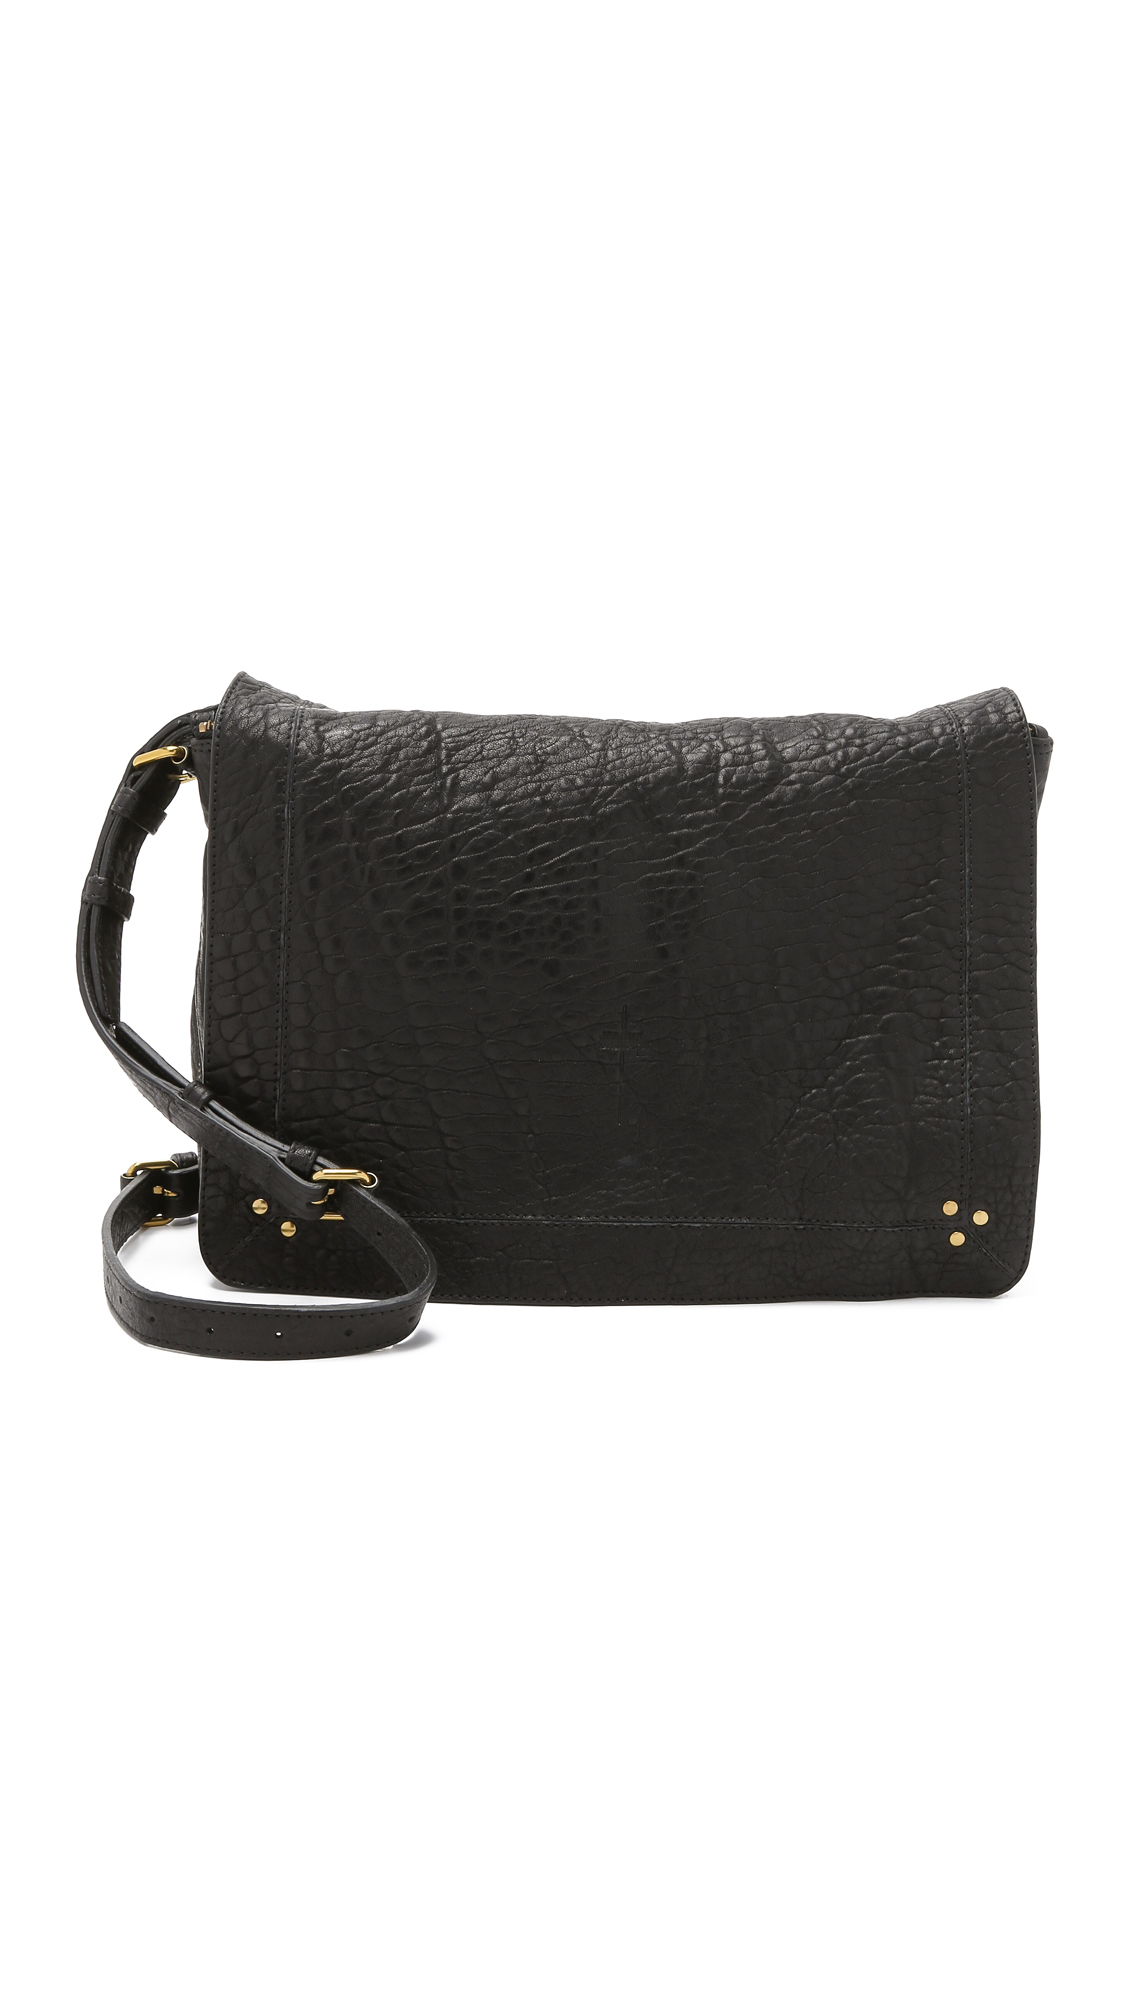 JÉRÔMe Dreyfuss Albert Bubble Lambskin Handbag In Black